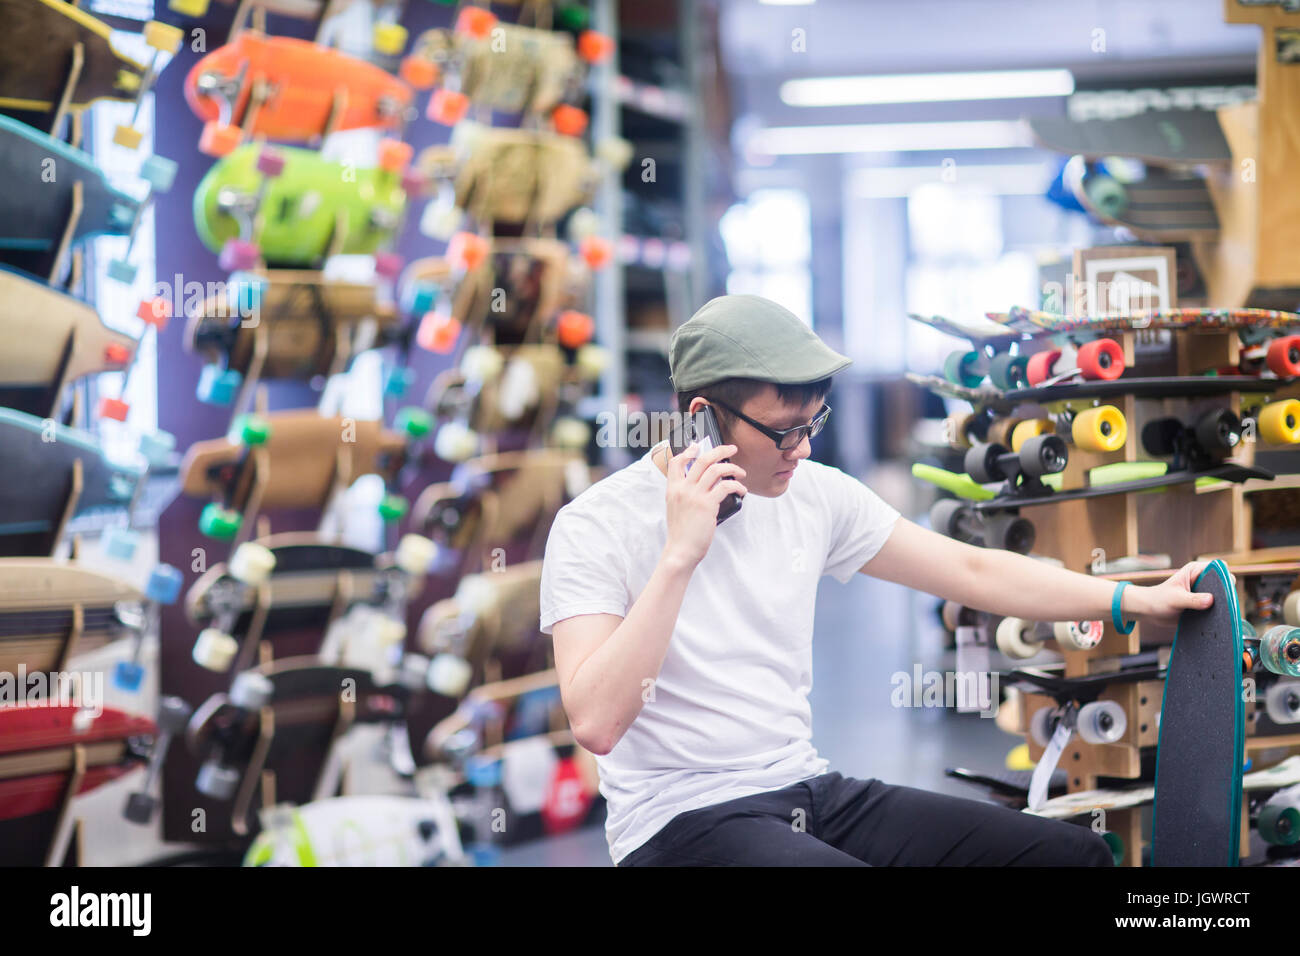 Young male skateboarder making smartphone call in skateboard shop - Stock Image